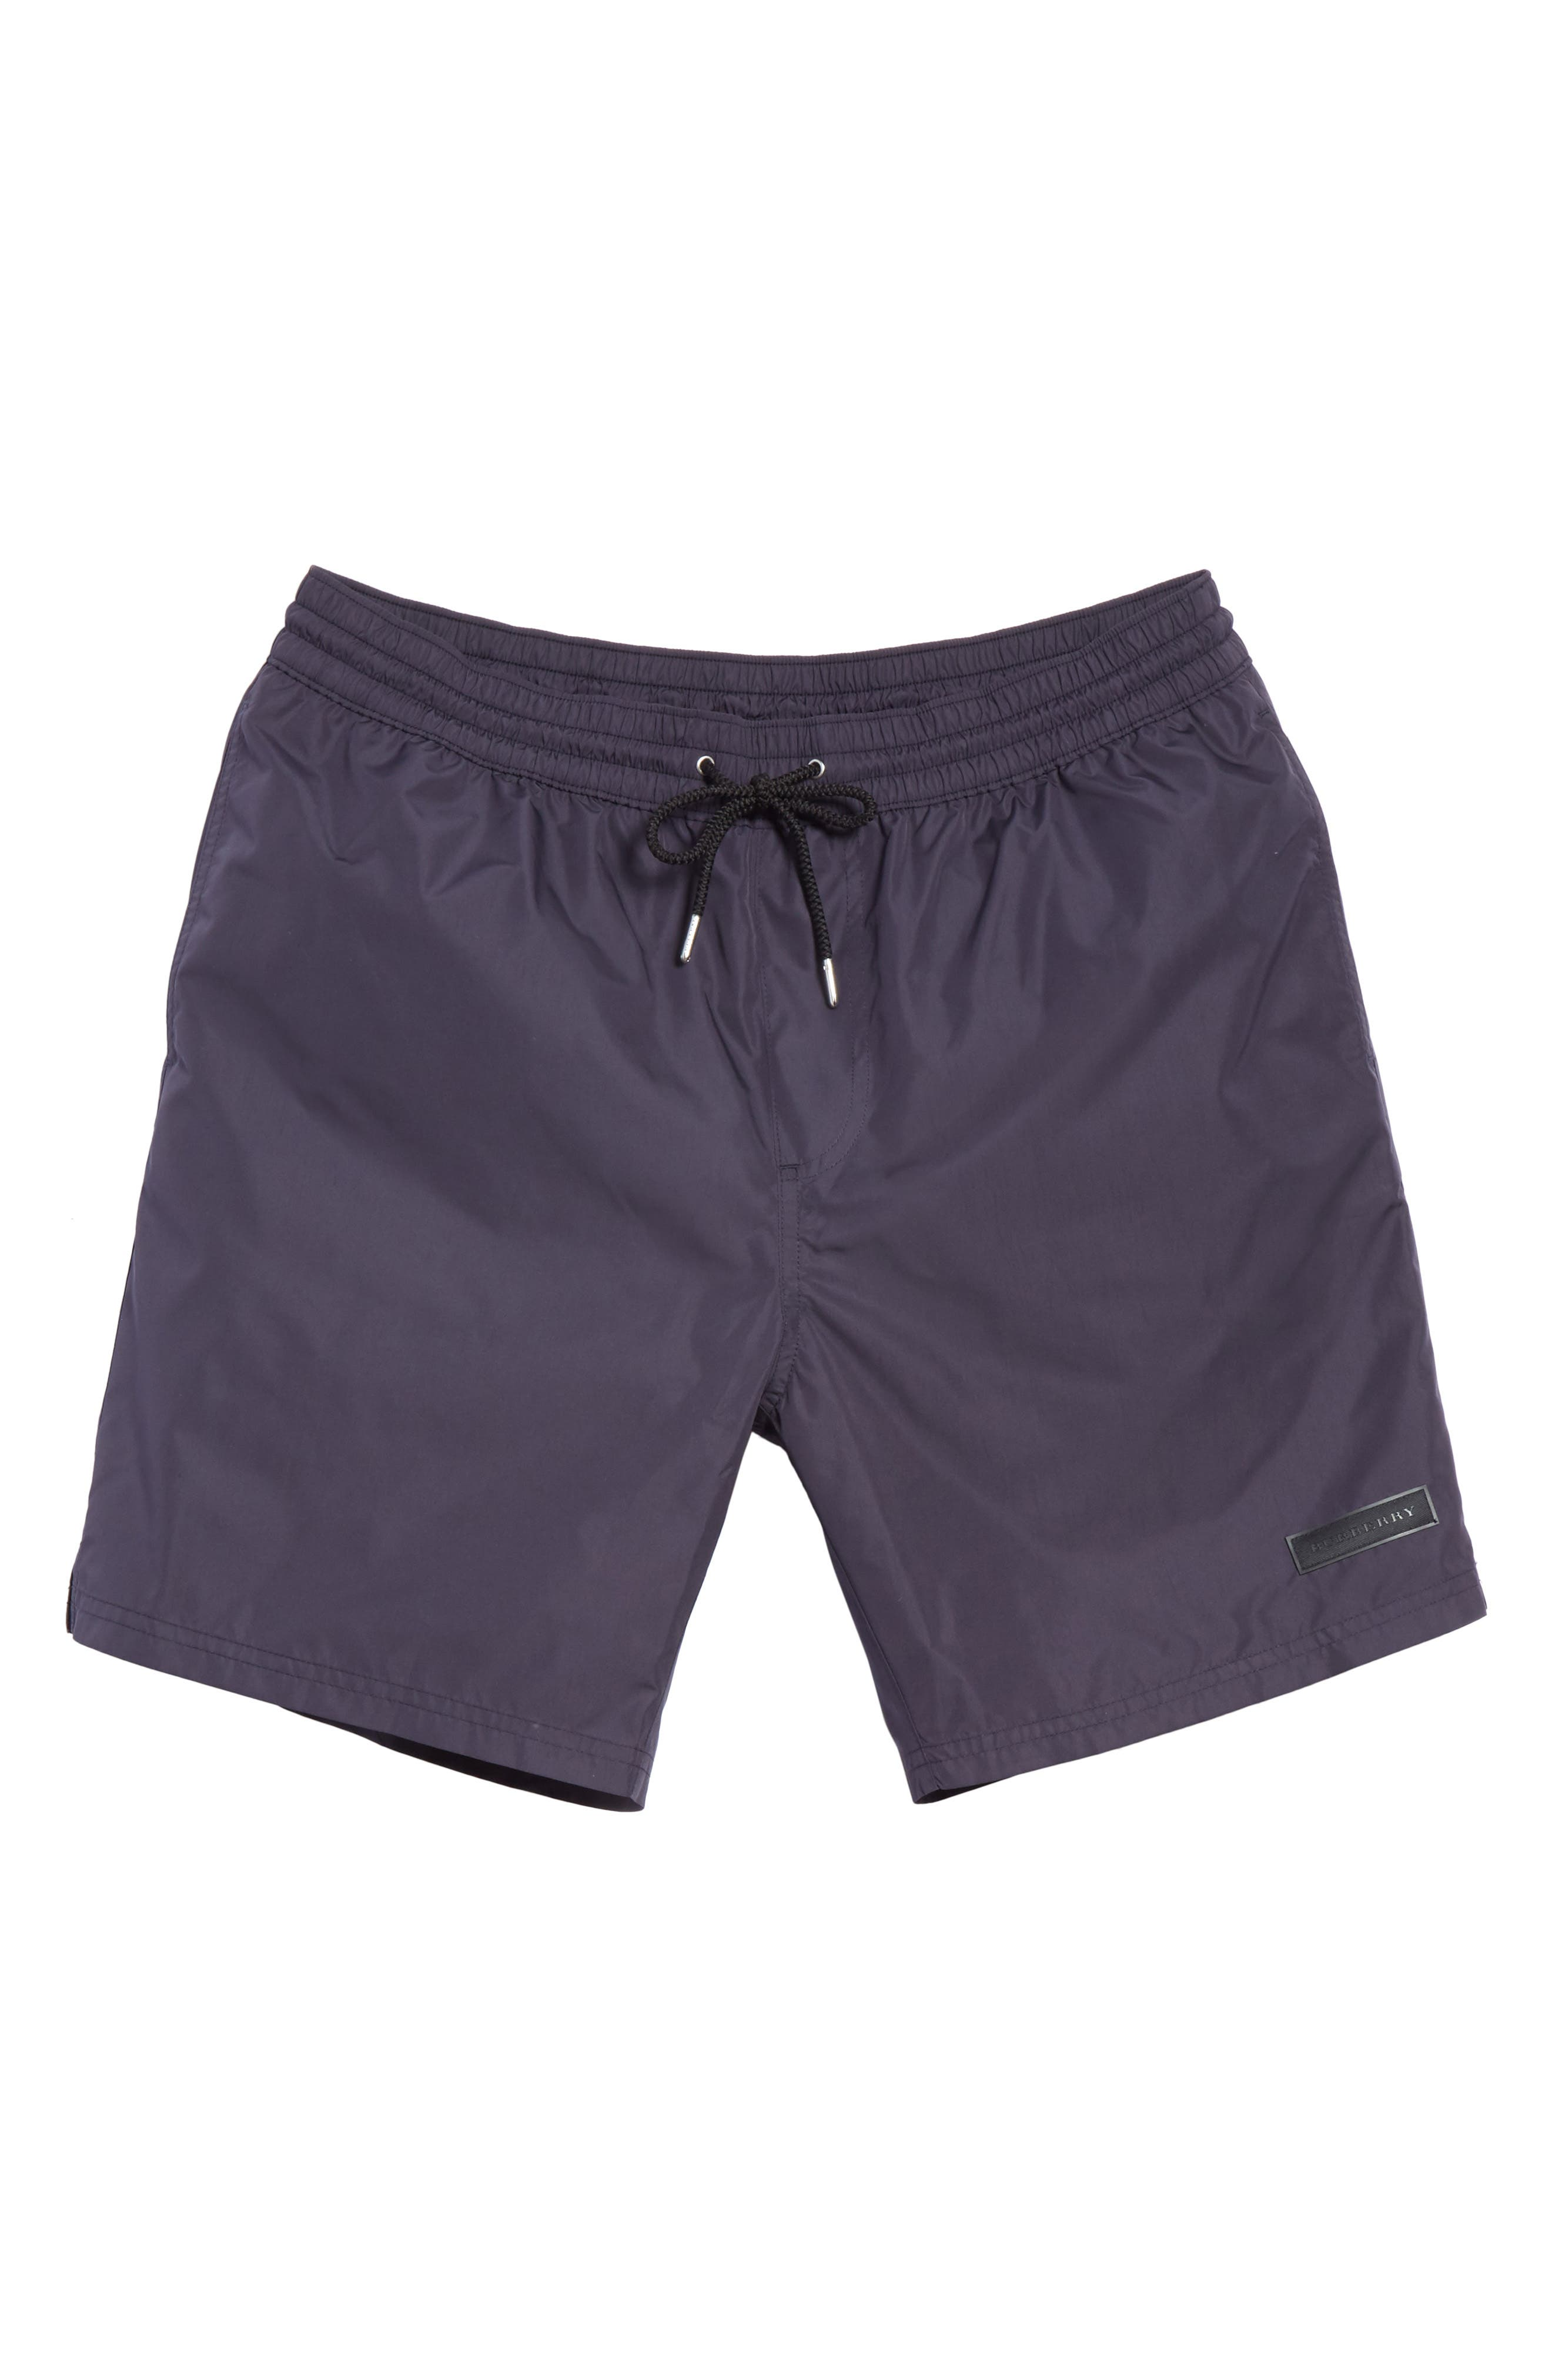 Guildes Swim Trunks,                             Alternate thumbnail 6, color,                             410